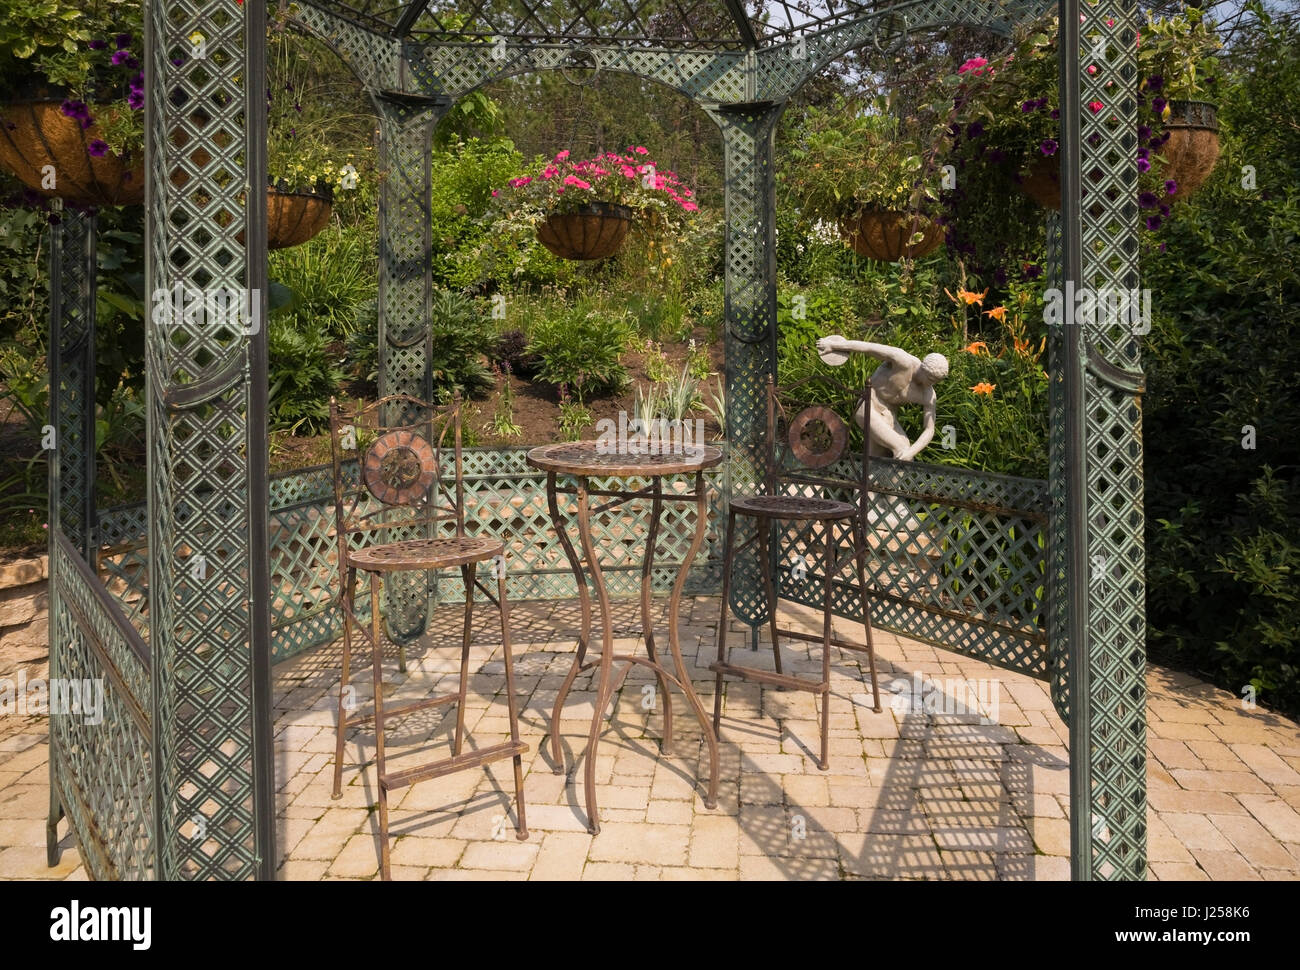 bistro style table and chairs inside a gazebo in a landscaped